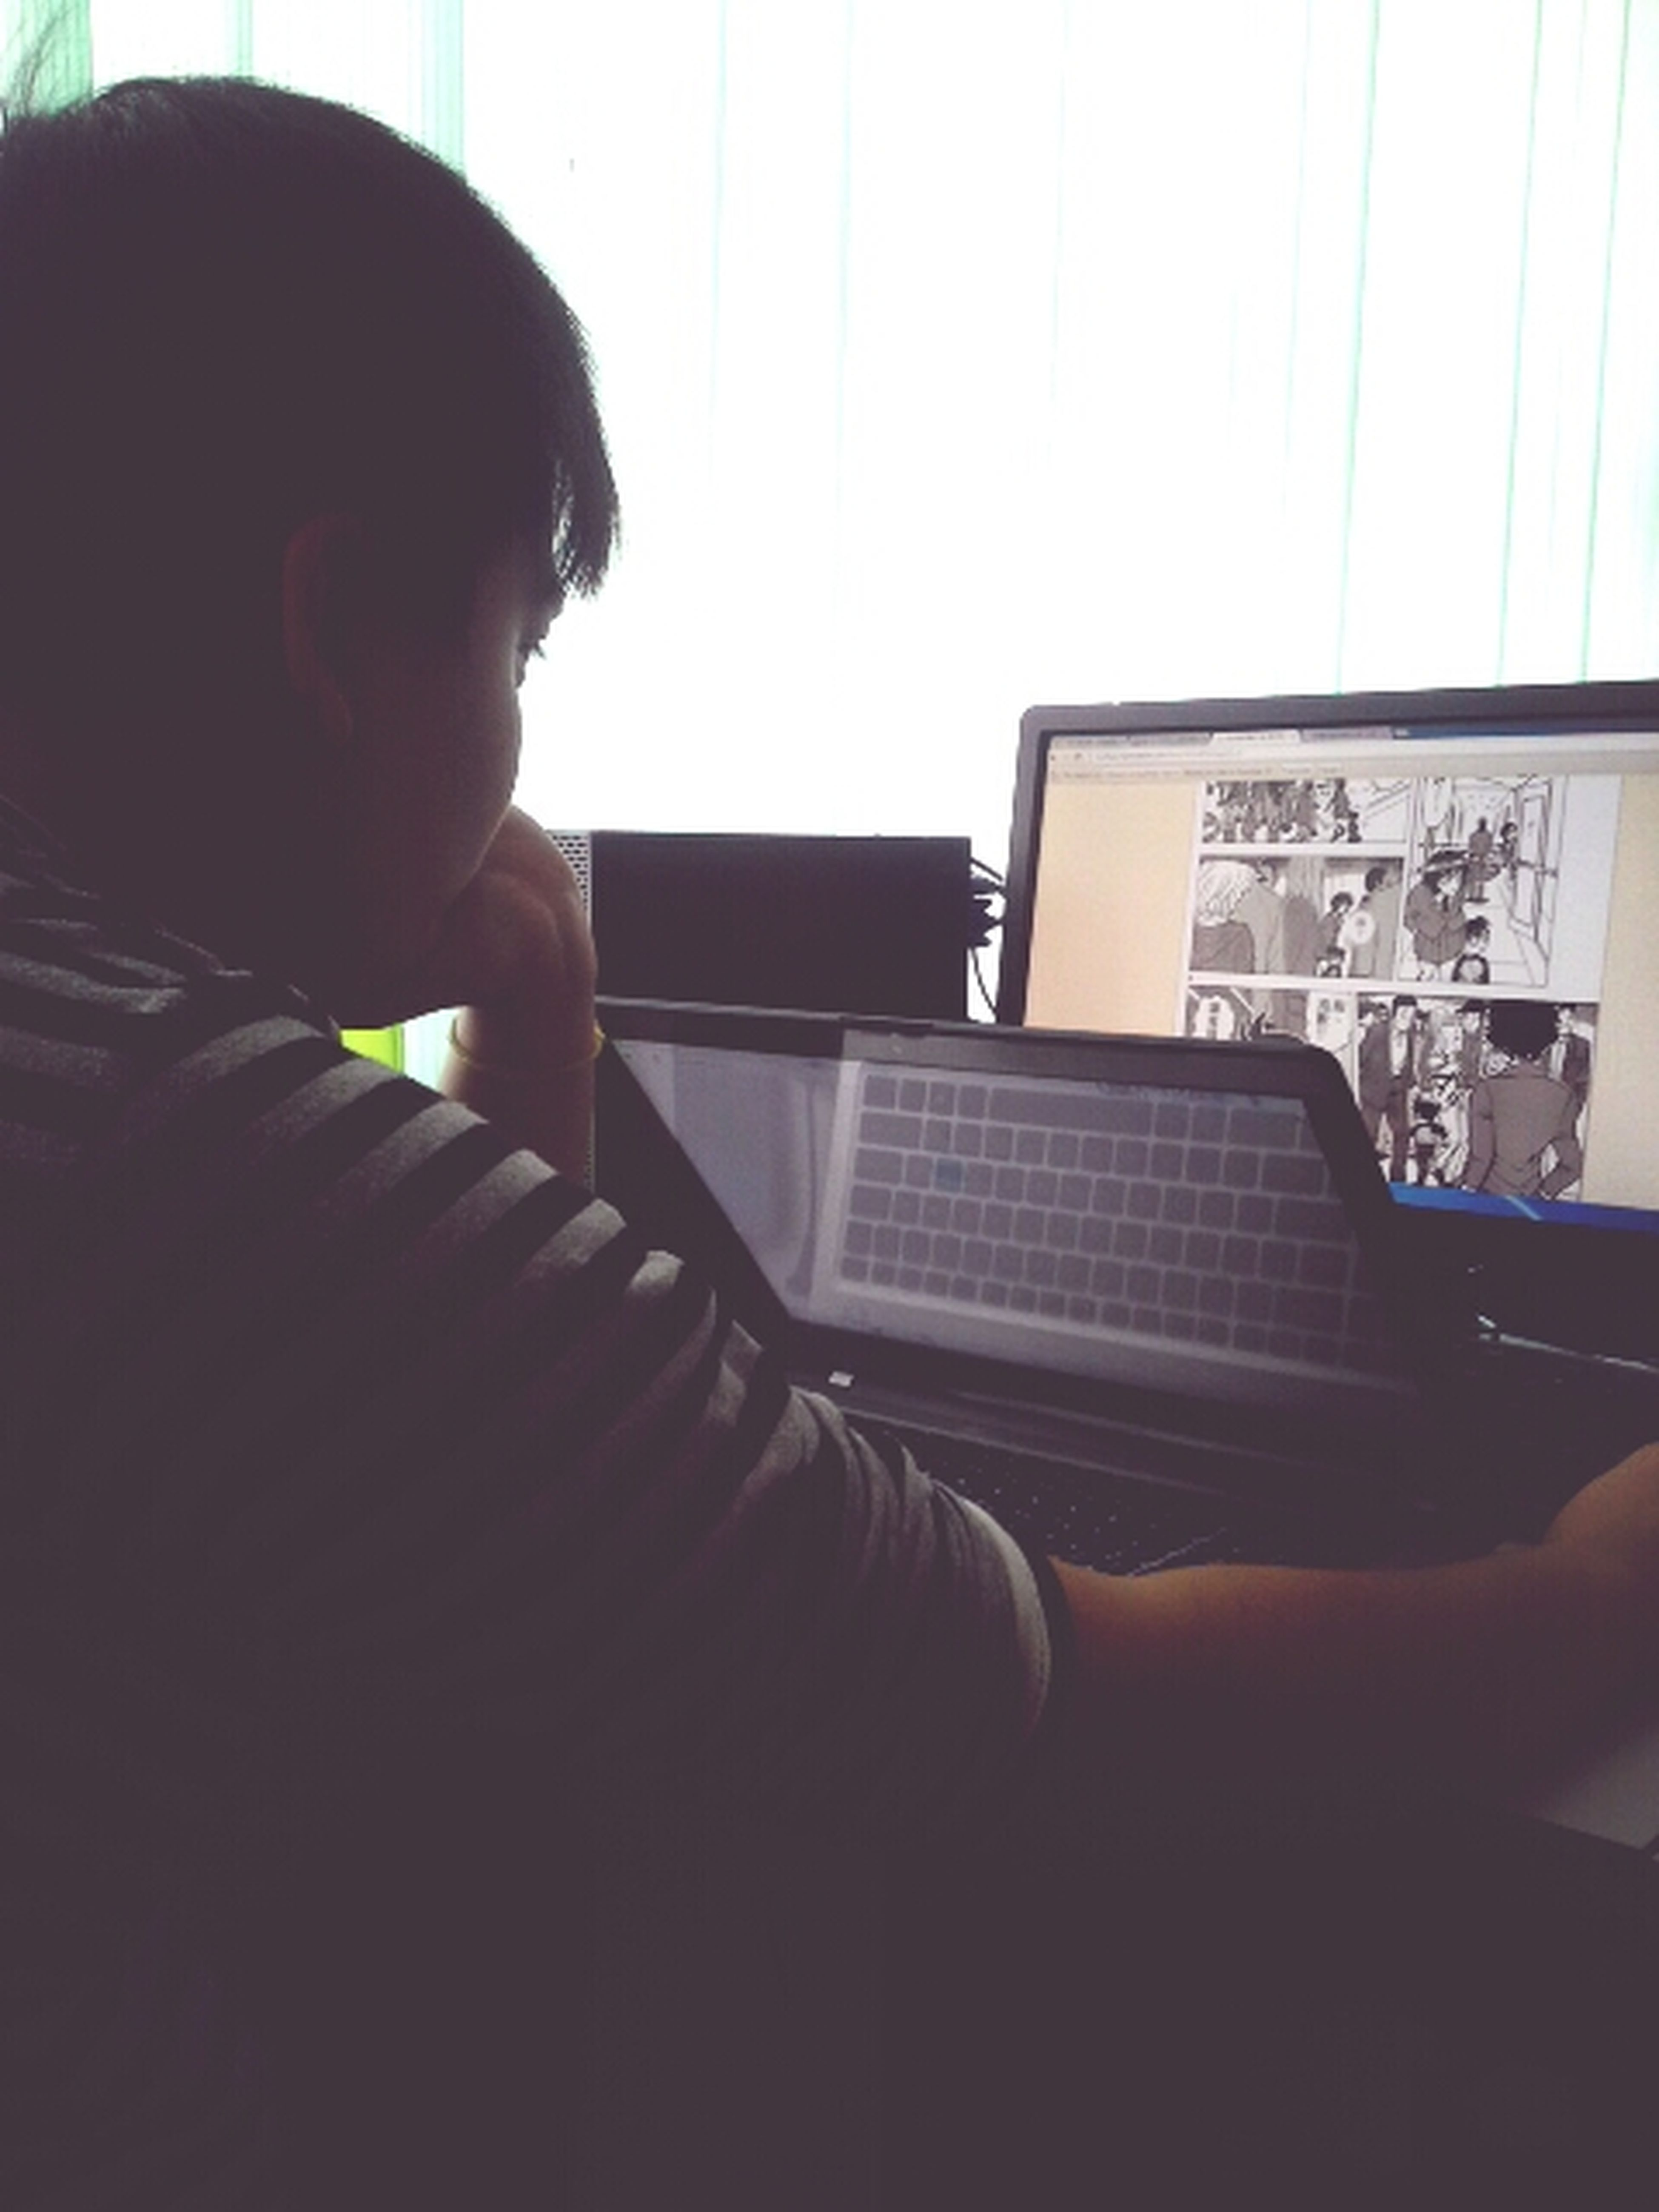 This is how ding chao studies software enginerering, manga boy.